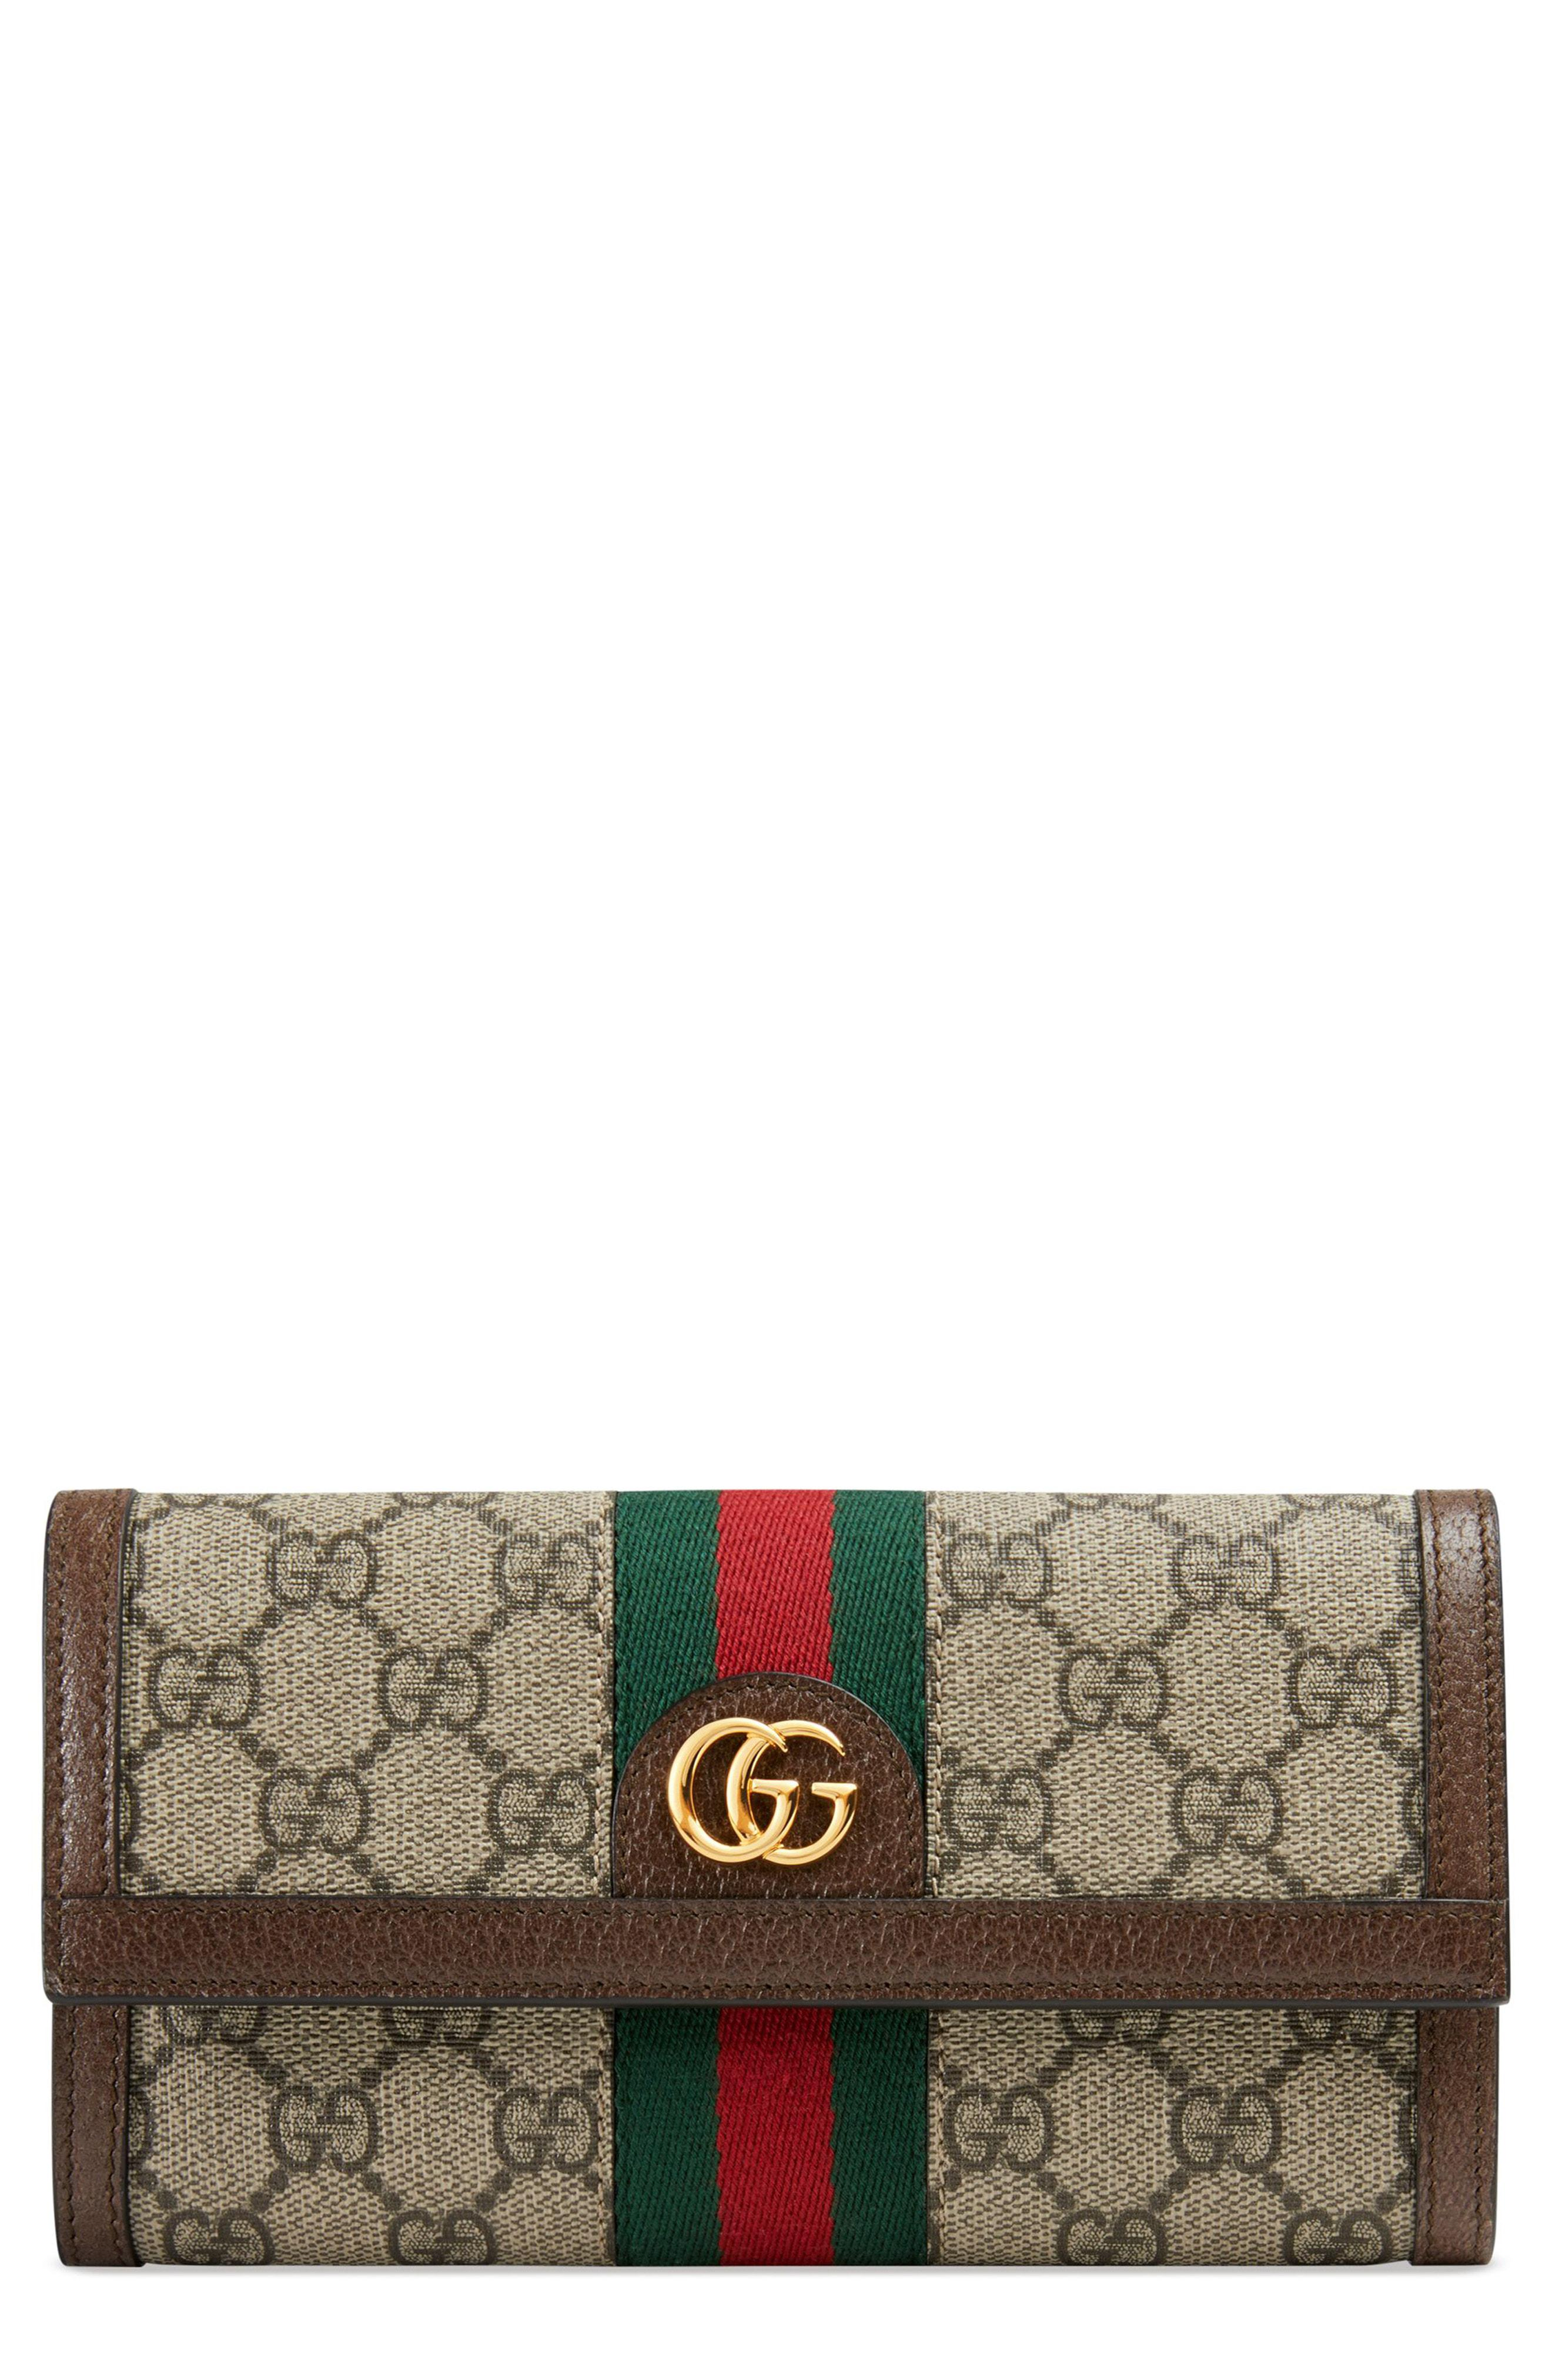 fda987b689 Lyst - Gucci Ophidia Gg Supreme Continental Wallet in Natural